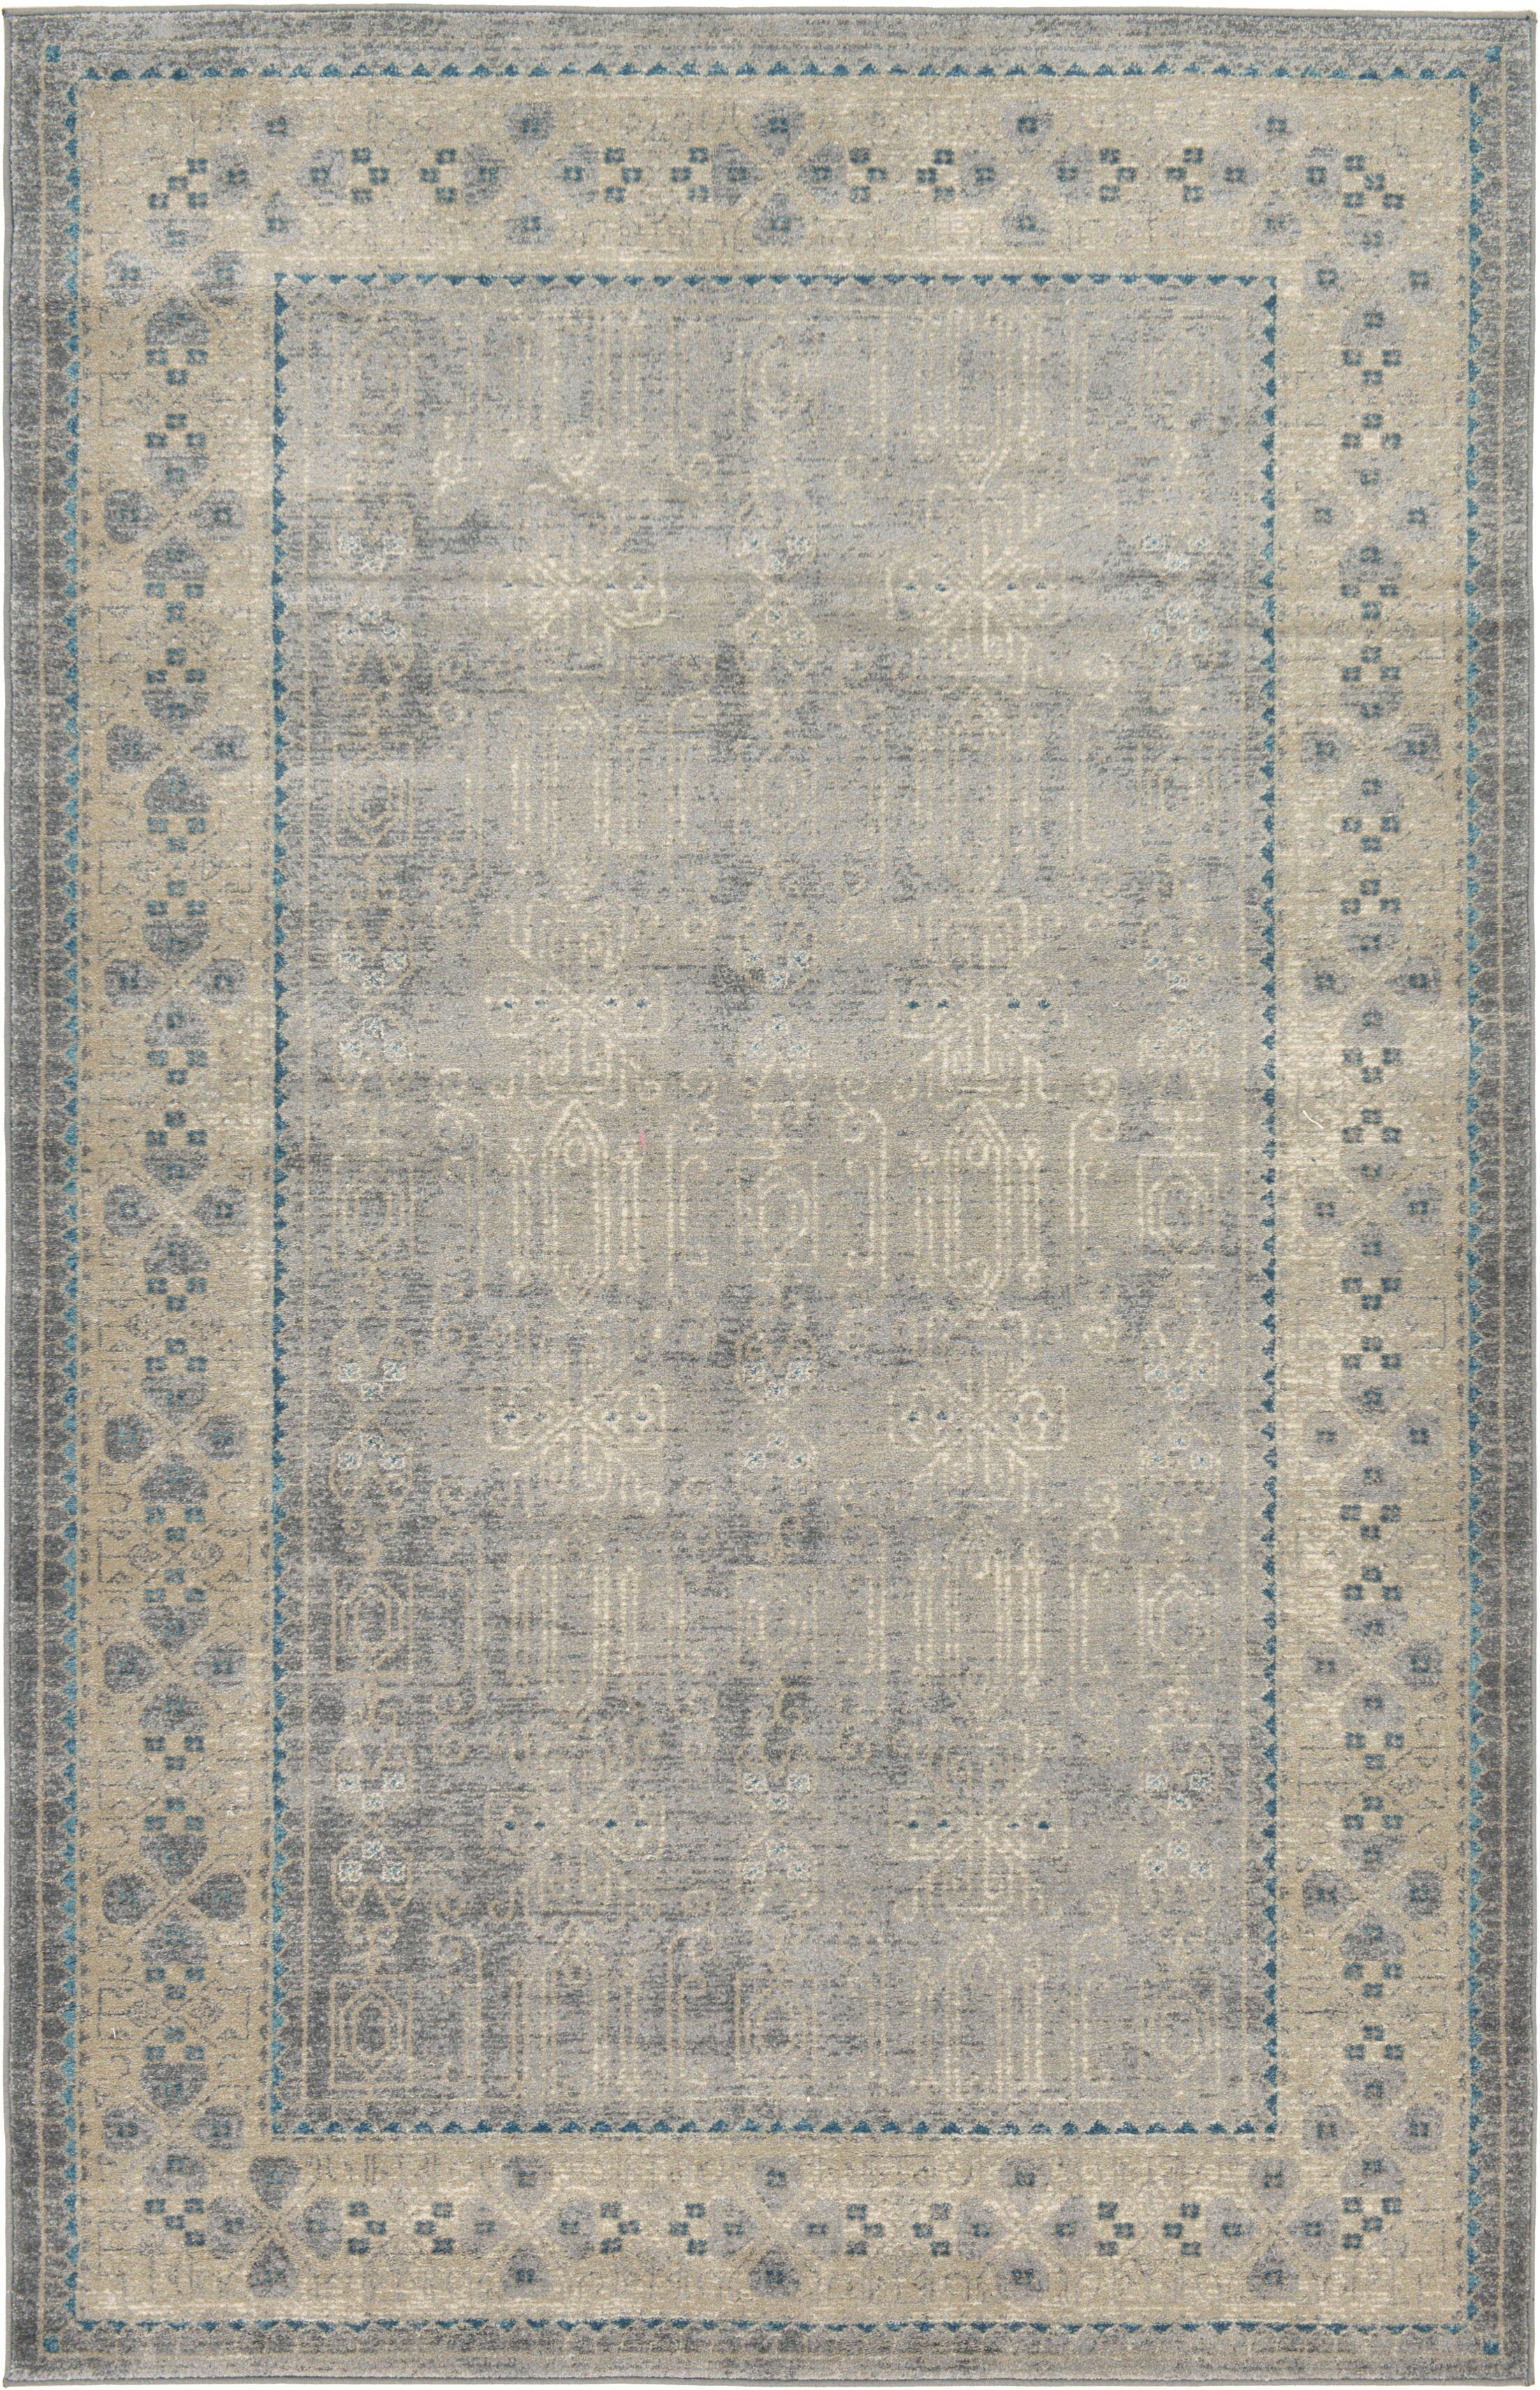 Brierfield Gray Area Rug Rug Size: Rectangle 5' x 8'